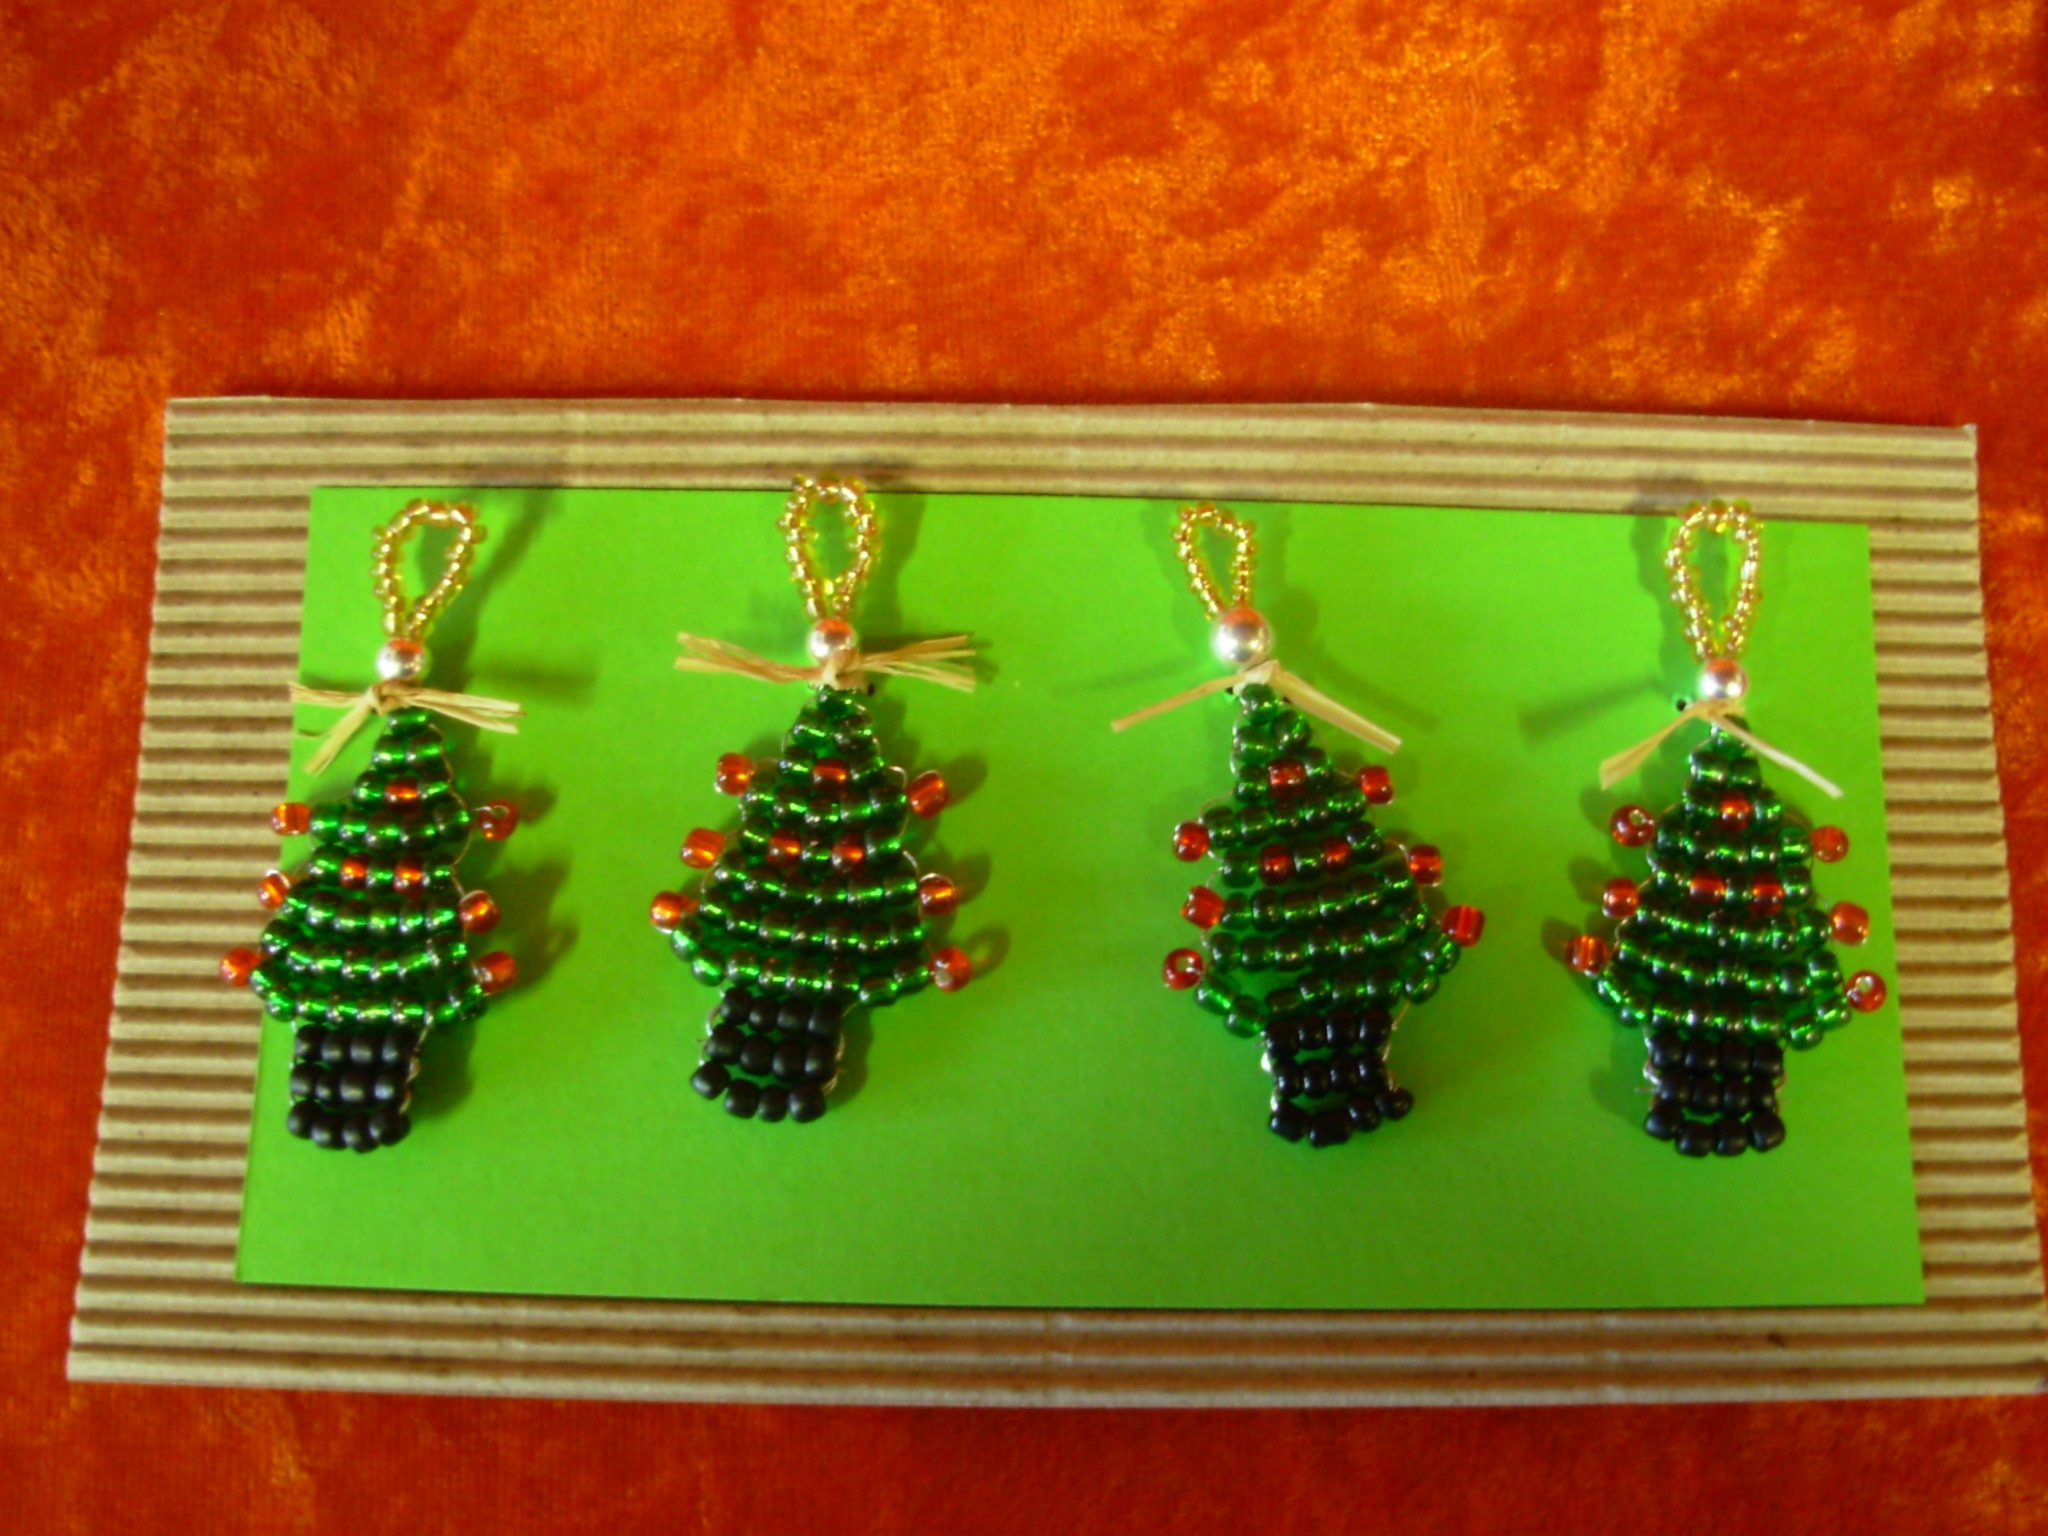 Wired Decorations (4) - Trees (Green)